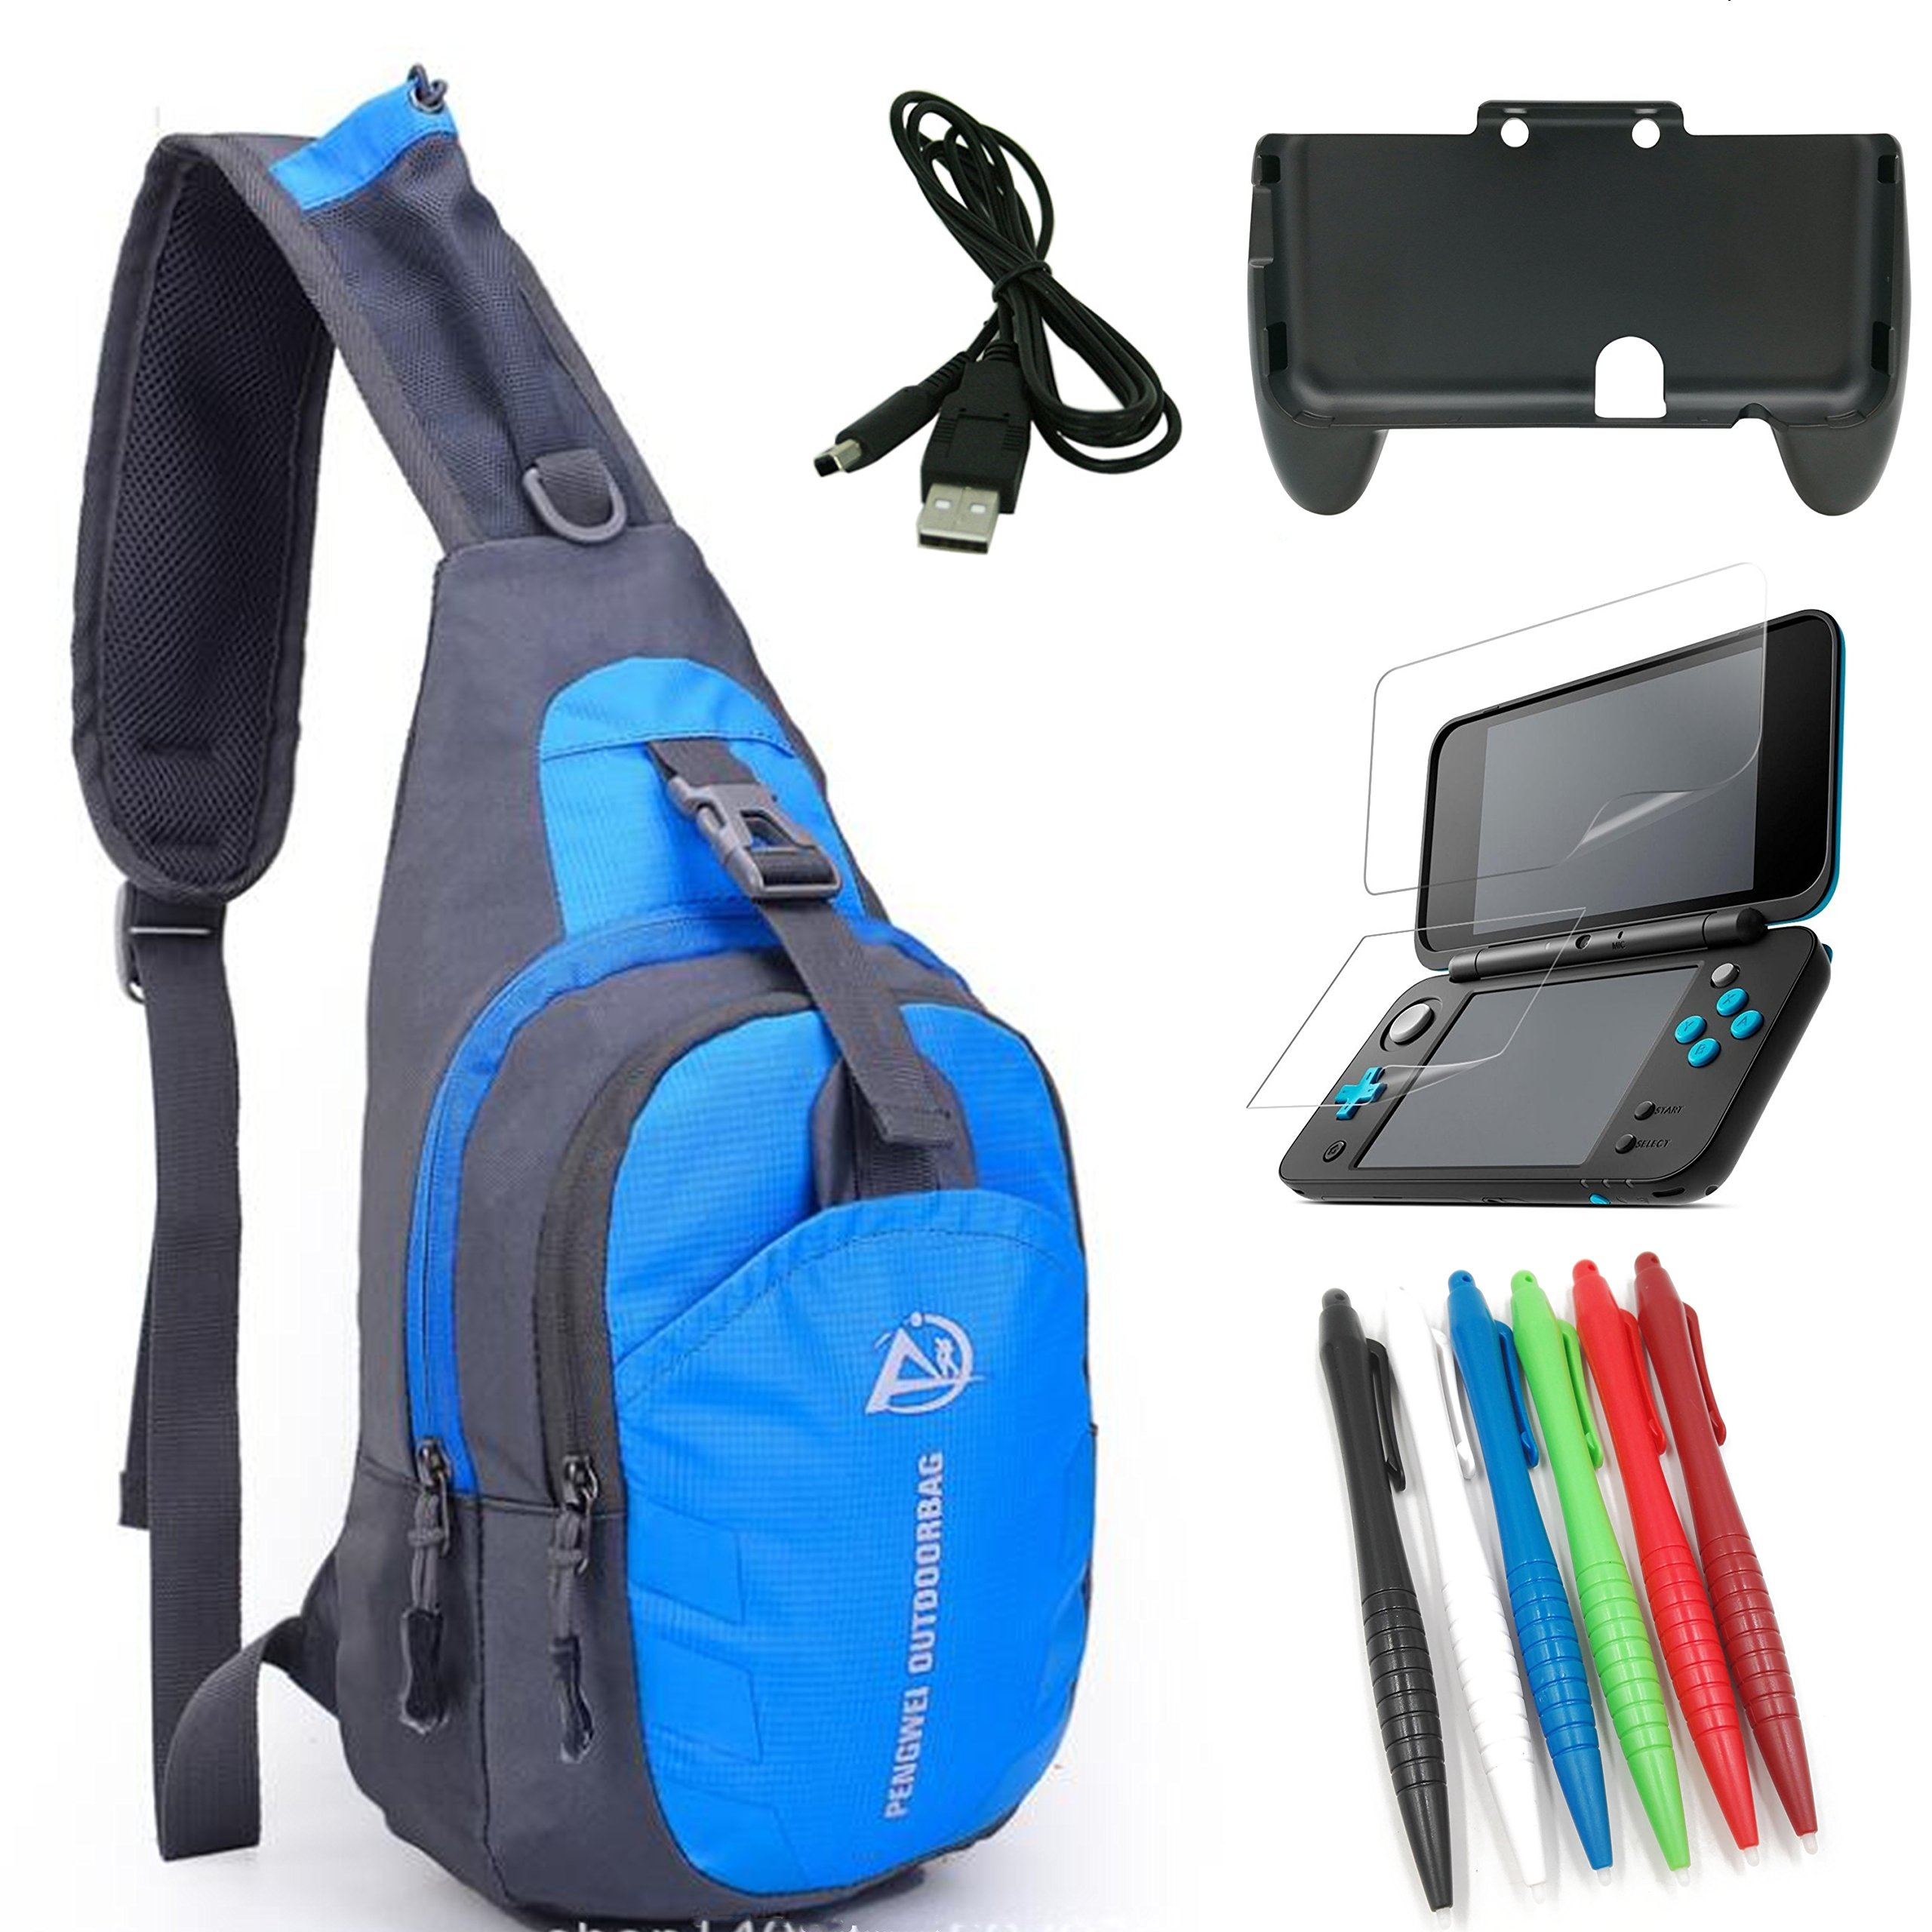 eLUUGIE 5 in 1 Crossbody Bag+Comfort Hand Grip with Stand for NEW Nintendo 2DS XL+New 2DS XL Screen Protector+2DS USB Charging Cable +Stylus Pen For New 2DS XL Travel Accessory New 2ds XL Travel Bag by eLUUGIE